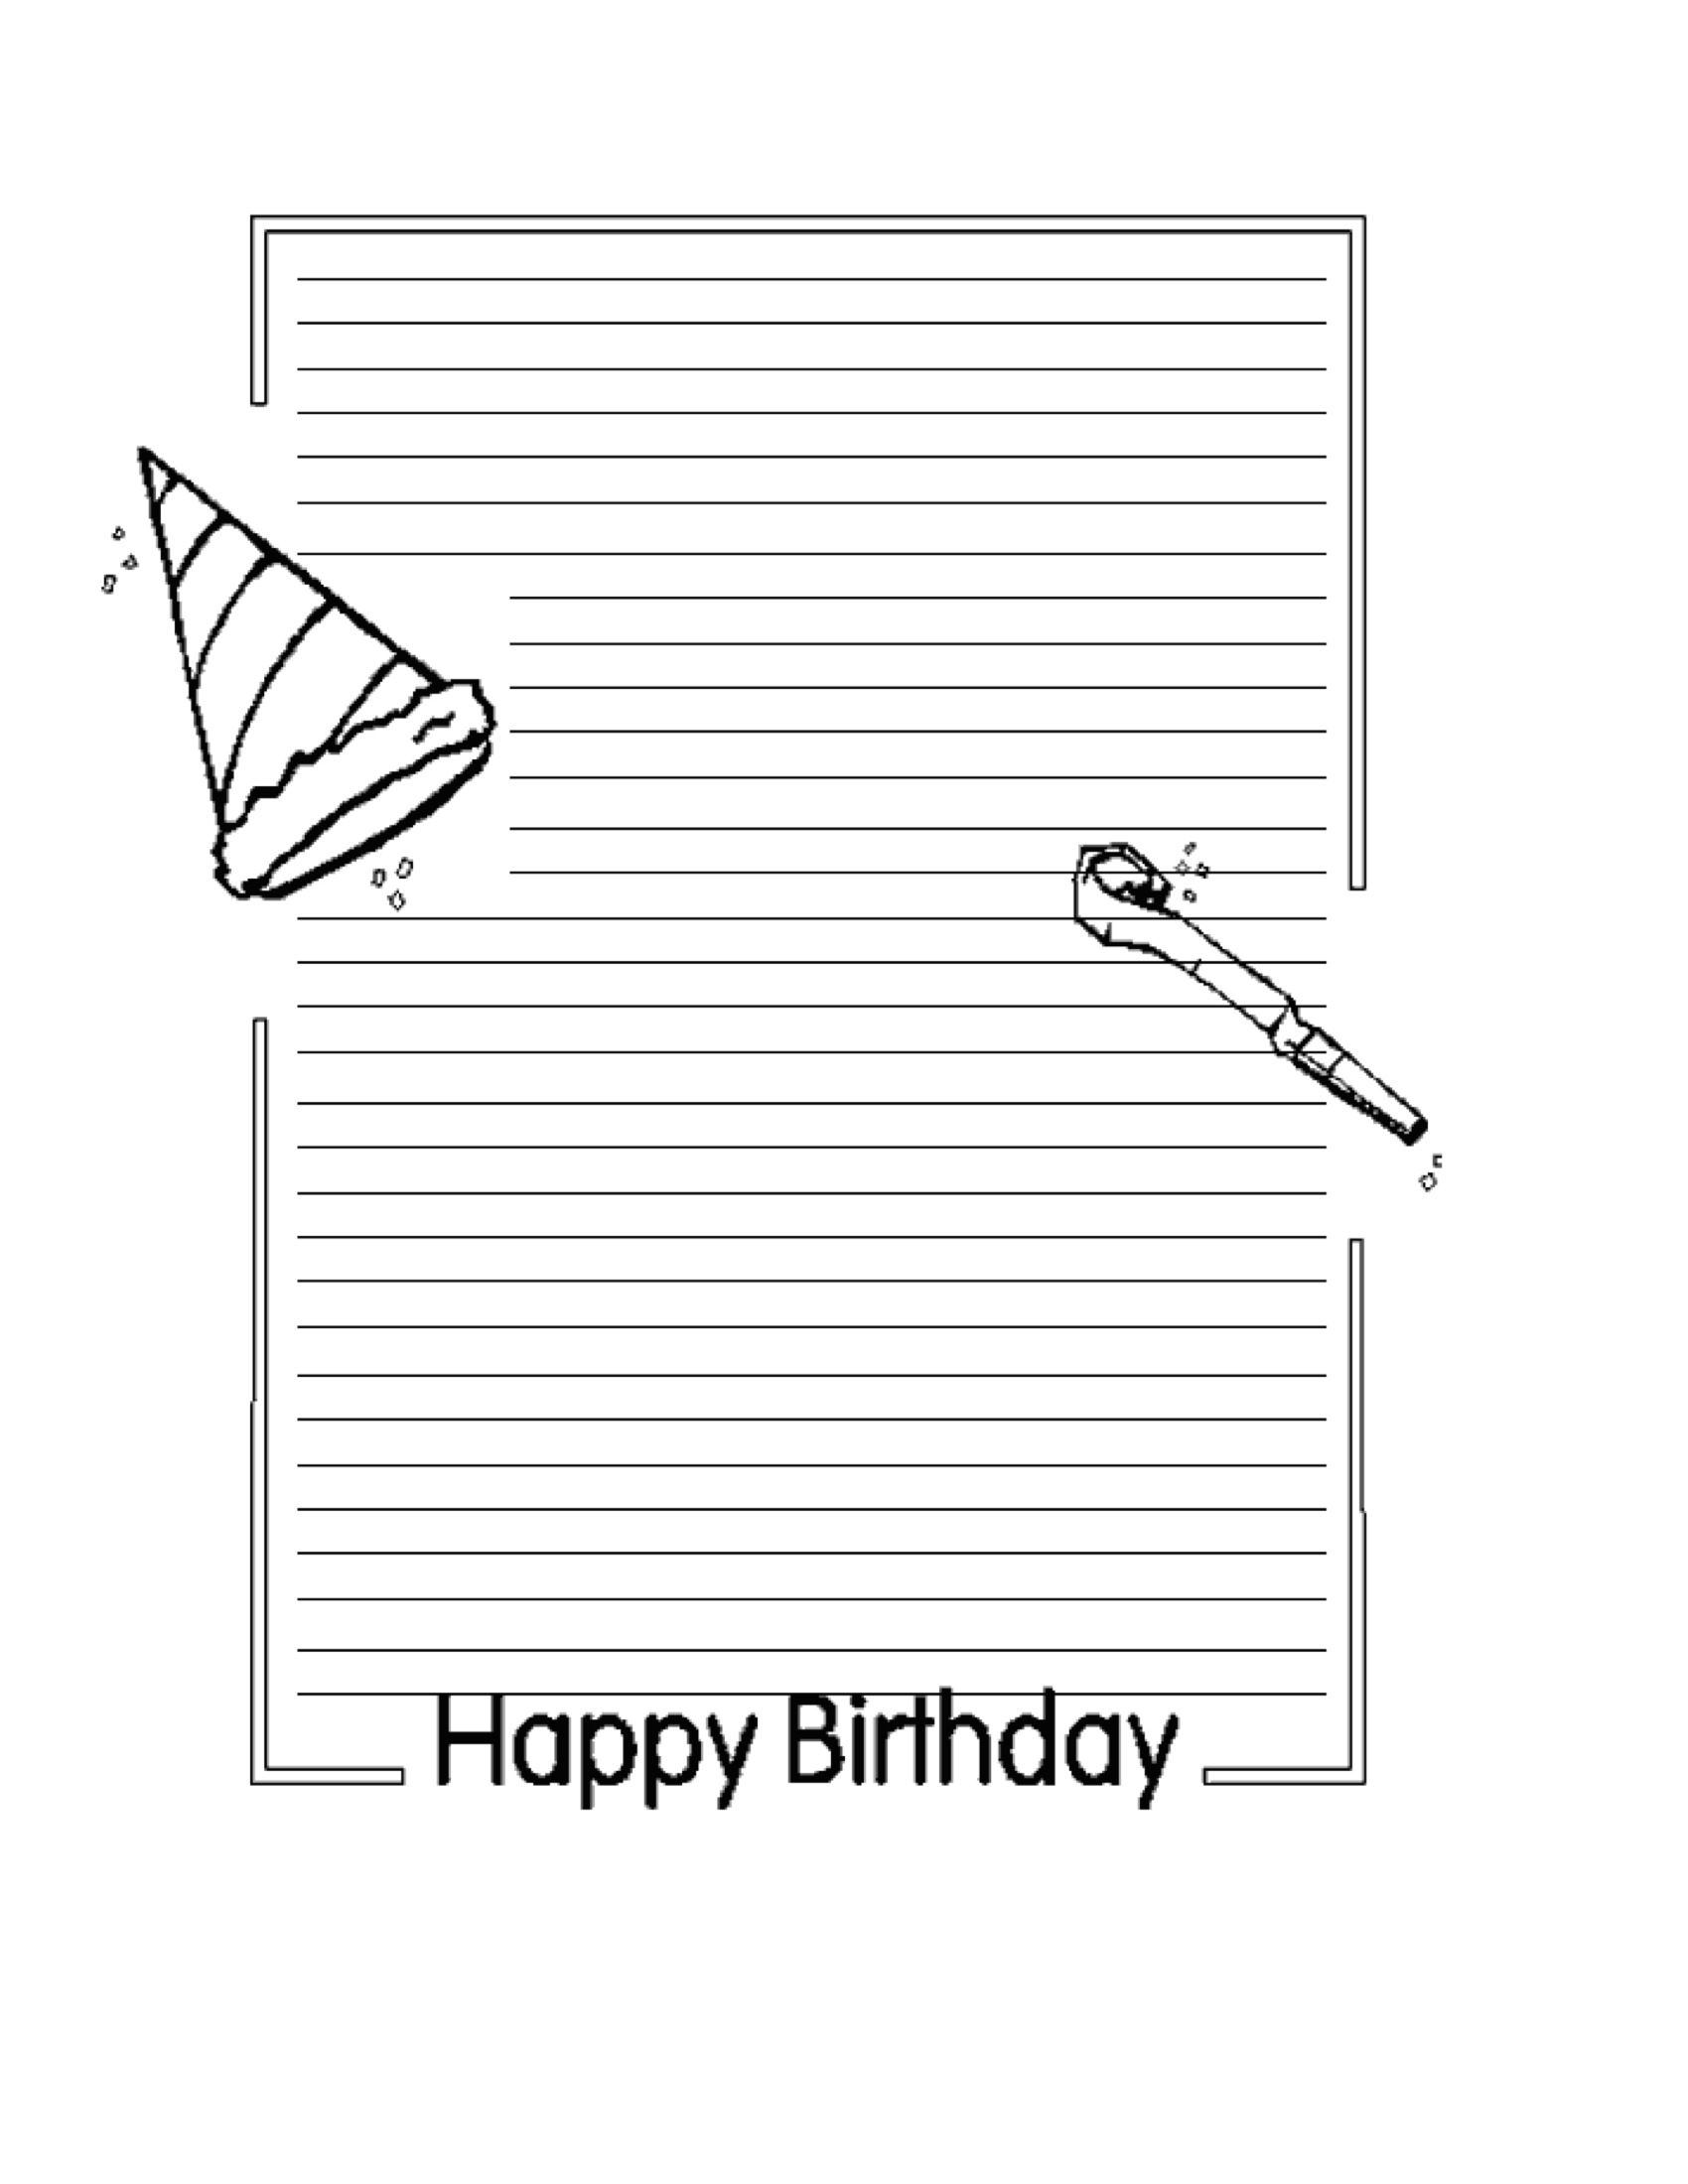 Birthday Letters To Presidents Writing Activity Tip: Masters for Happy Birthday Tracing Letters